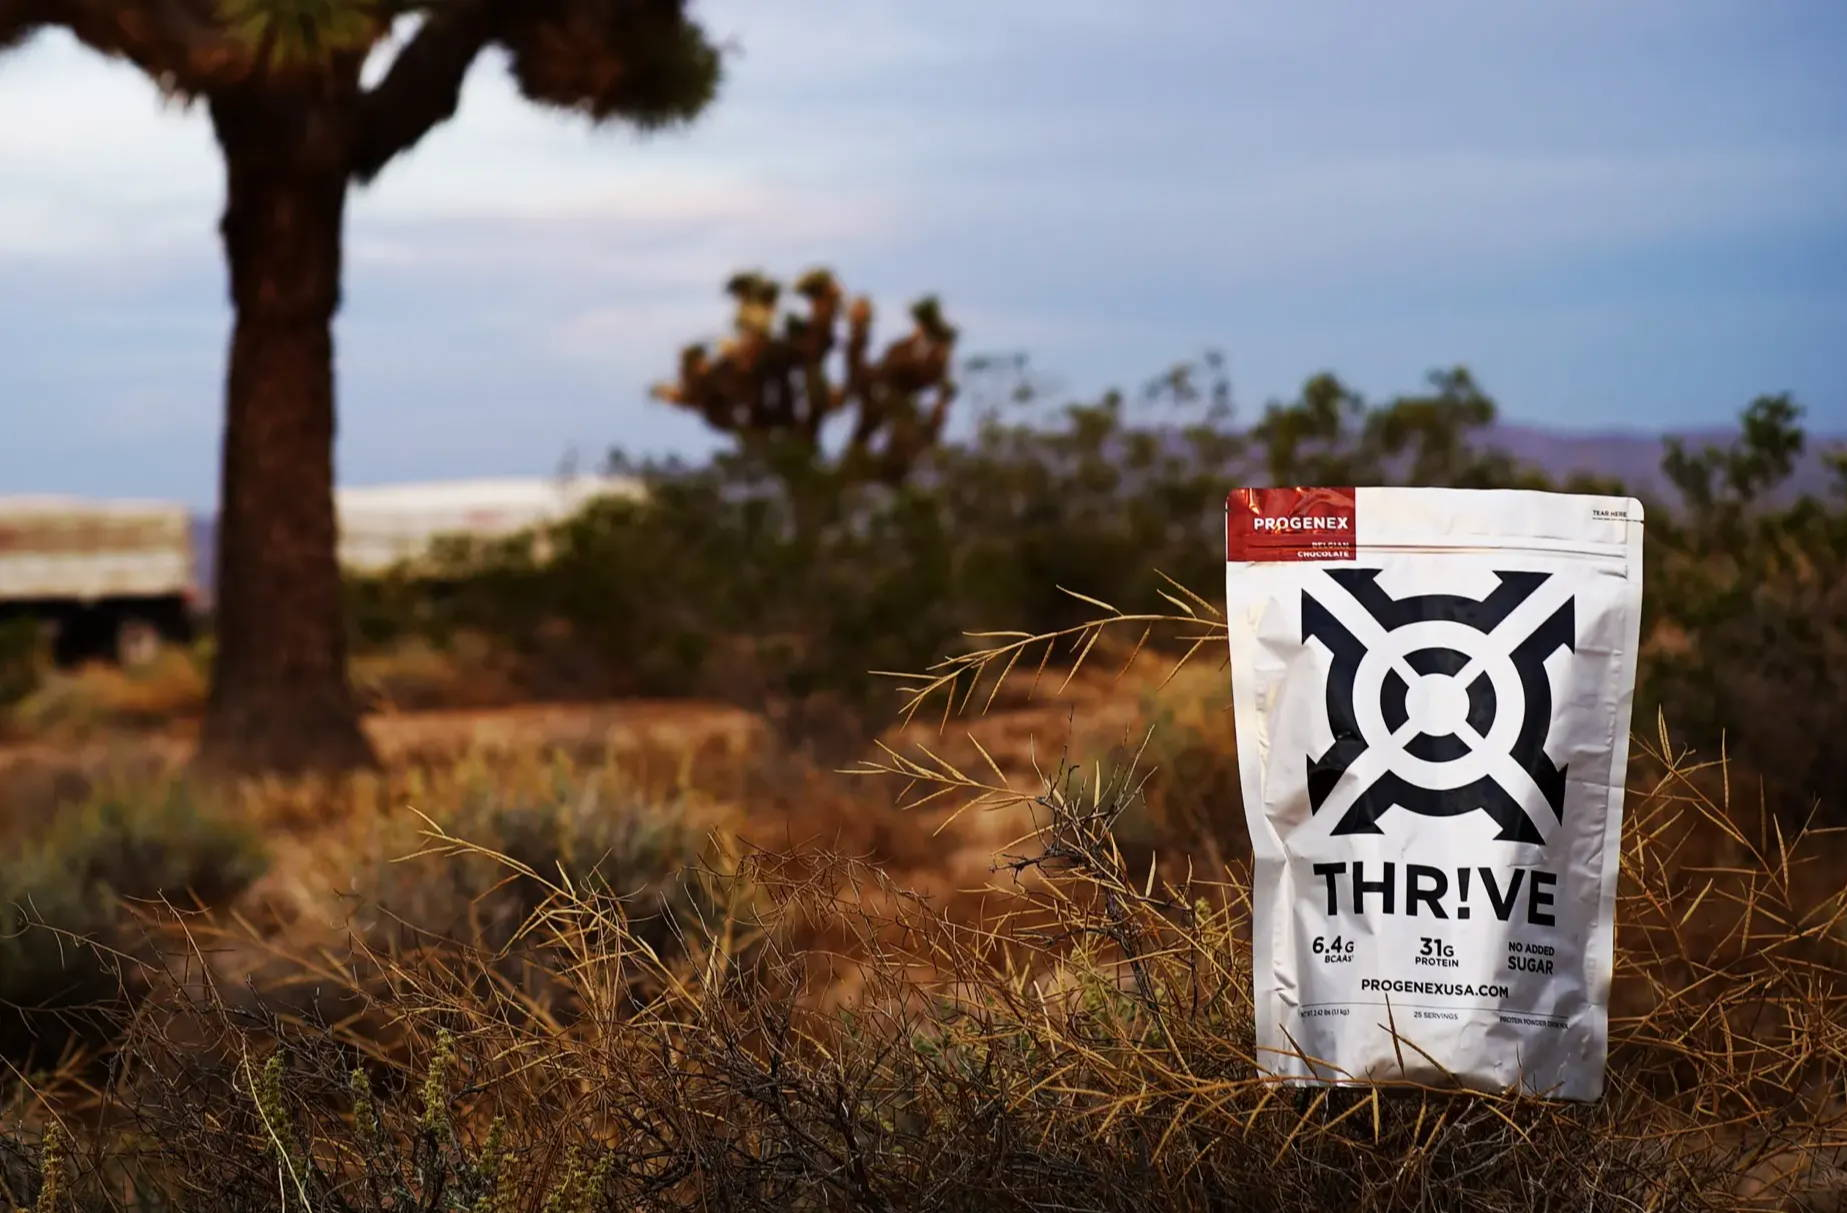 Bag of Thrive in a field with a tree.